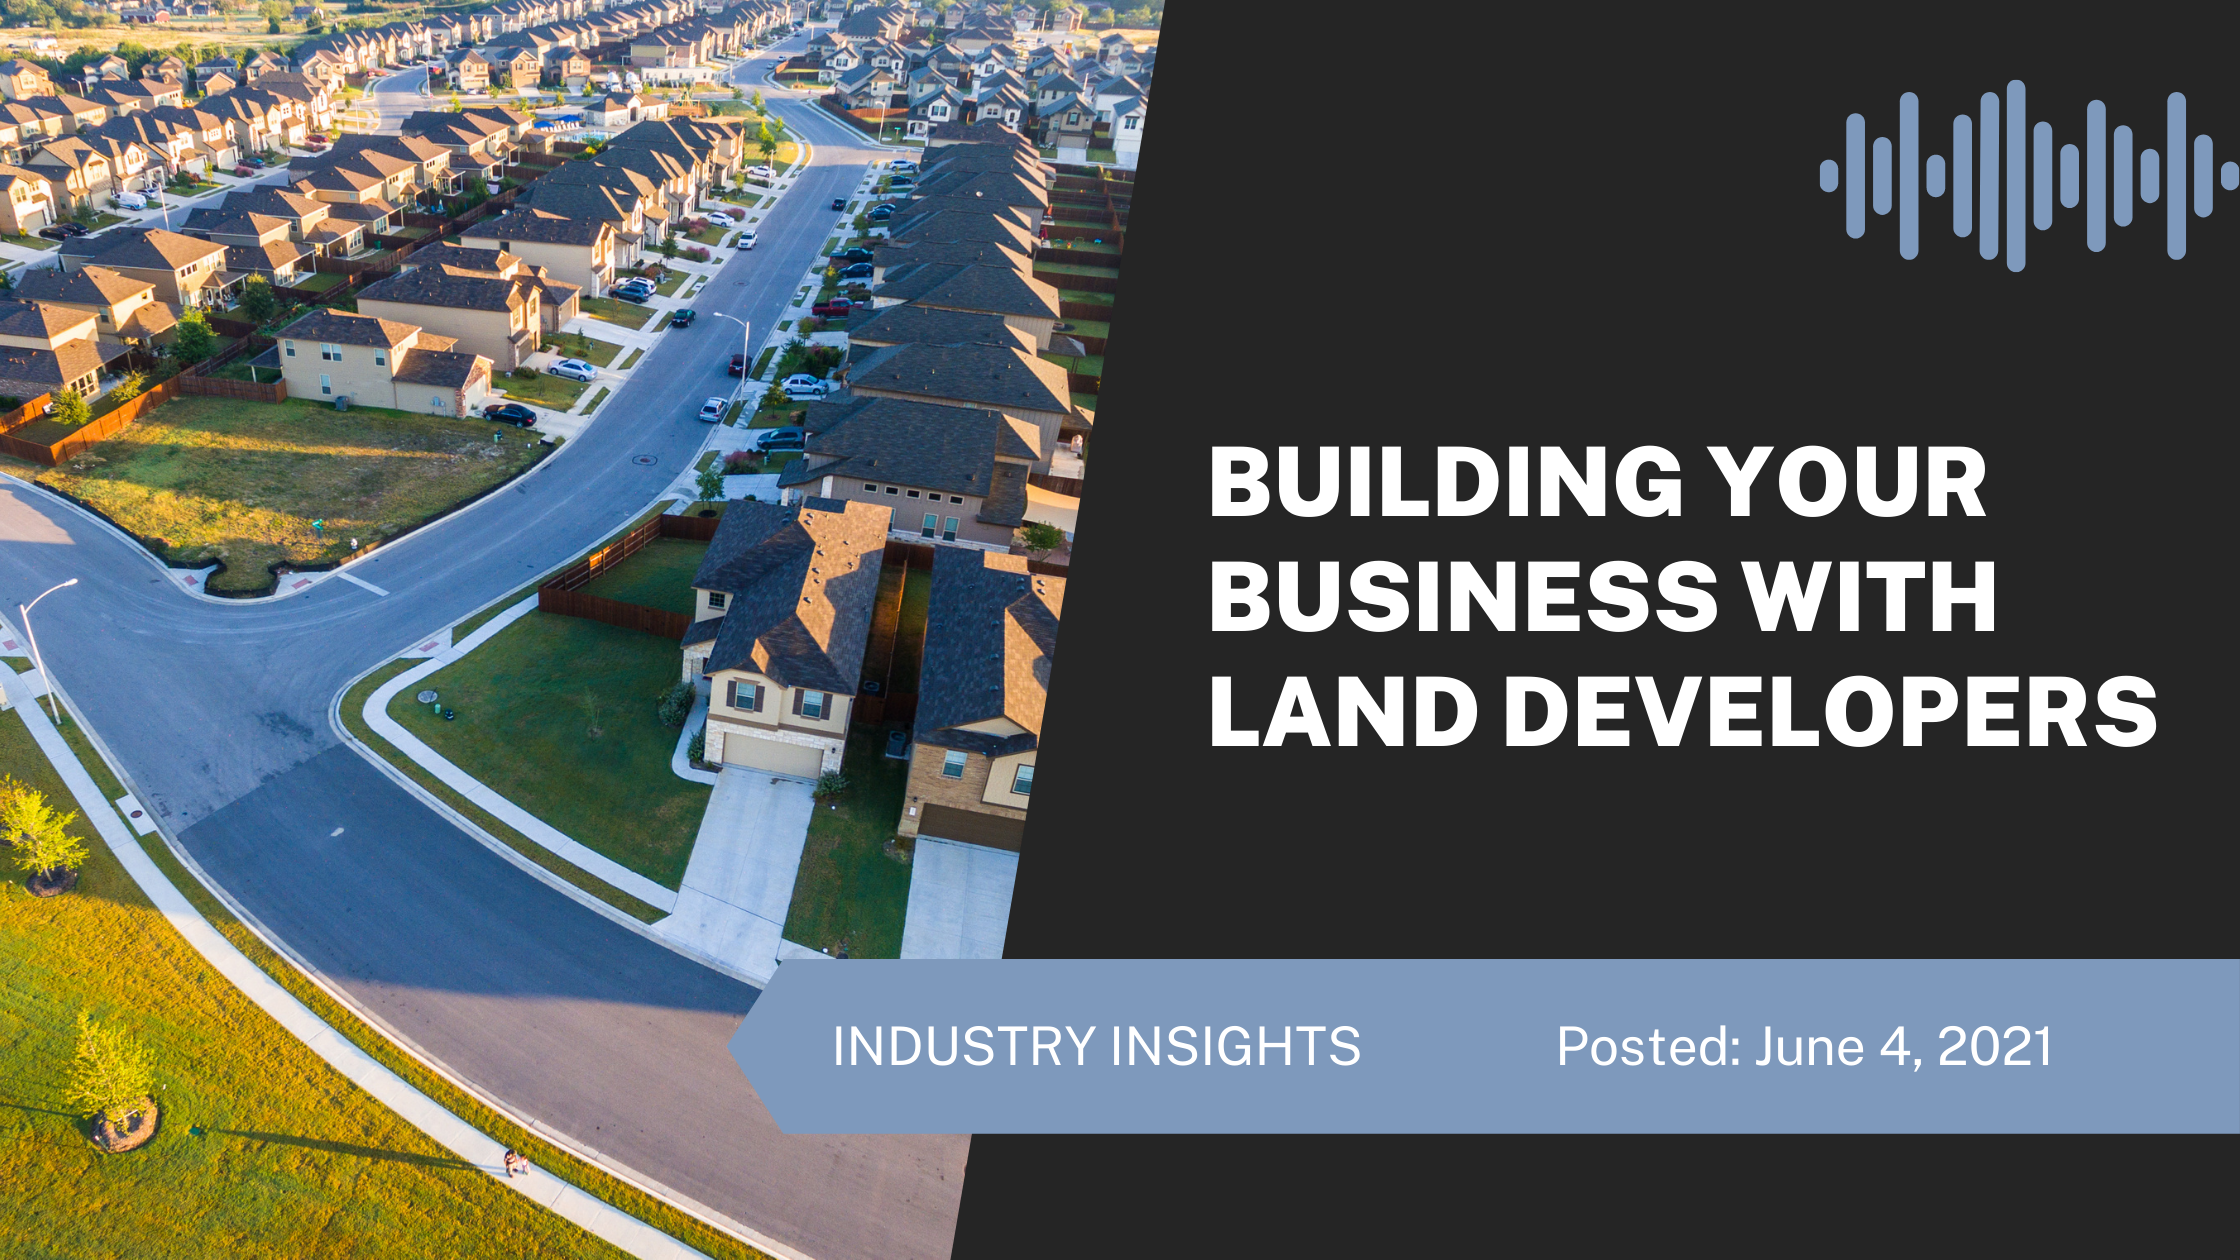 Building Your Business with Land Developers